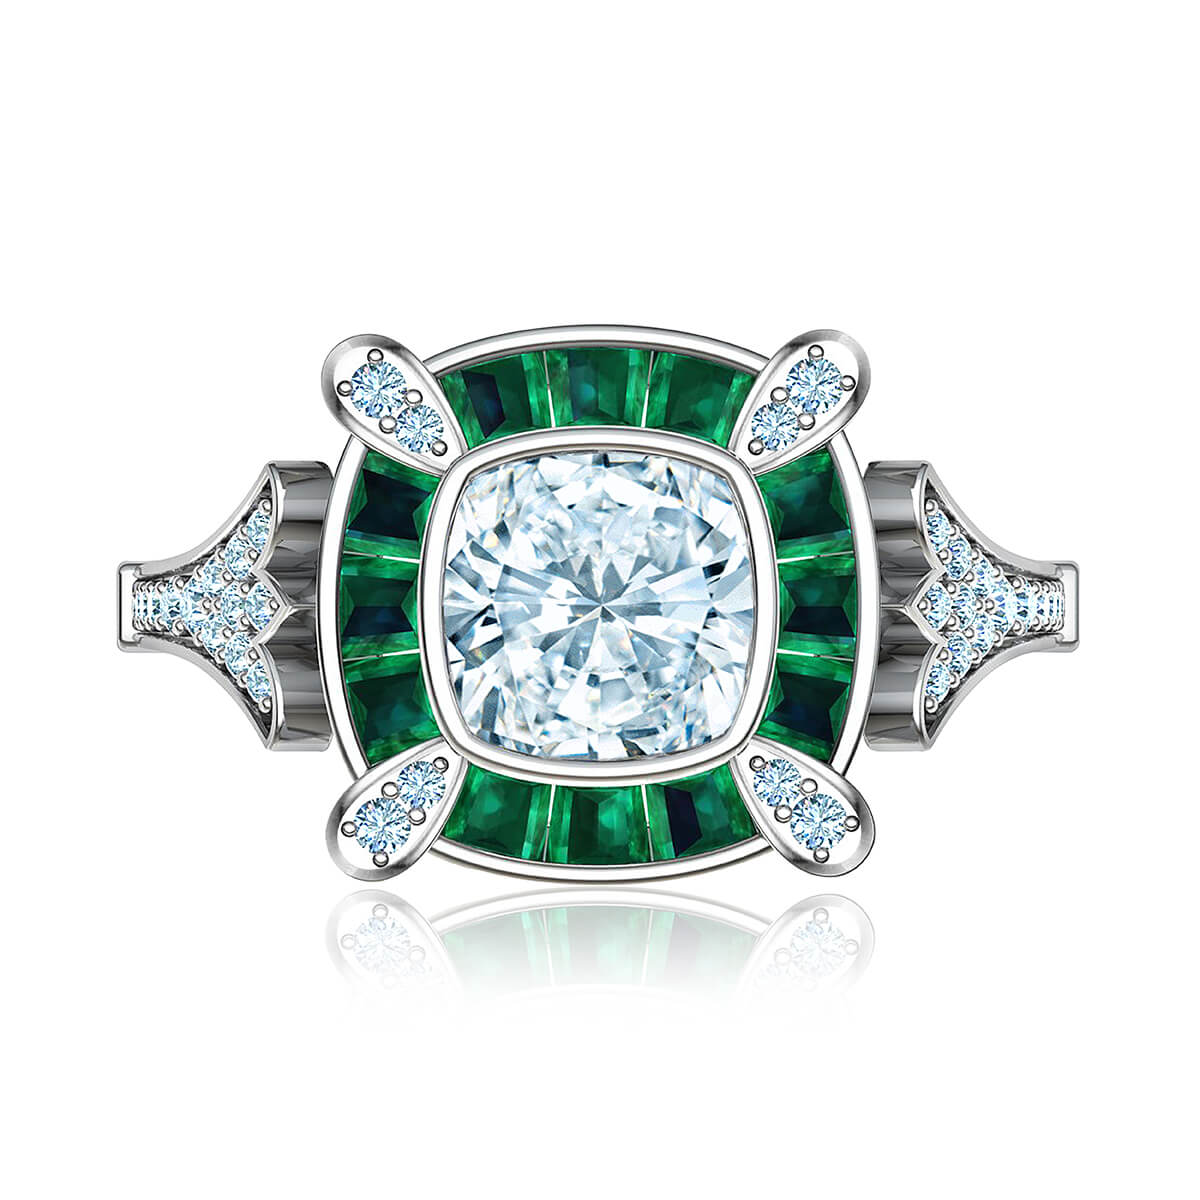 Athaliah Diamond Ring with Emerald Accents